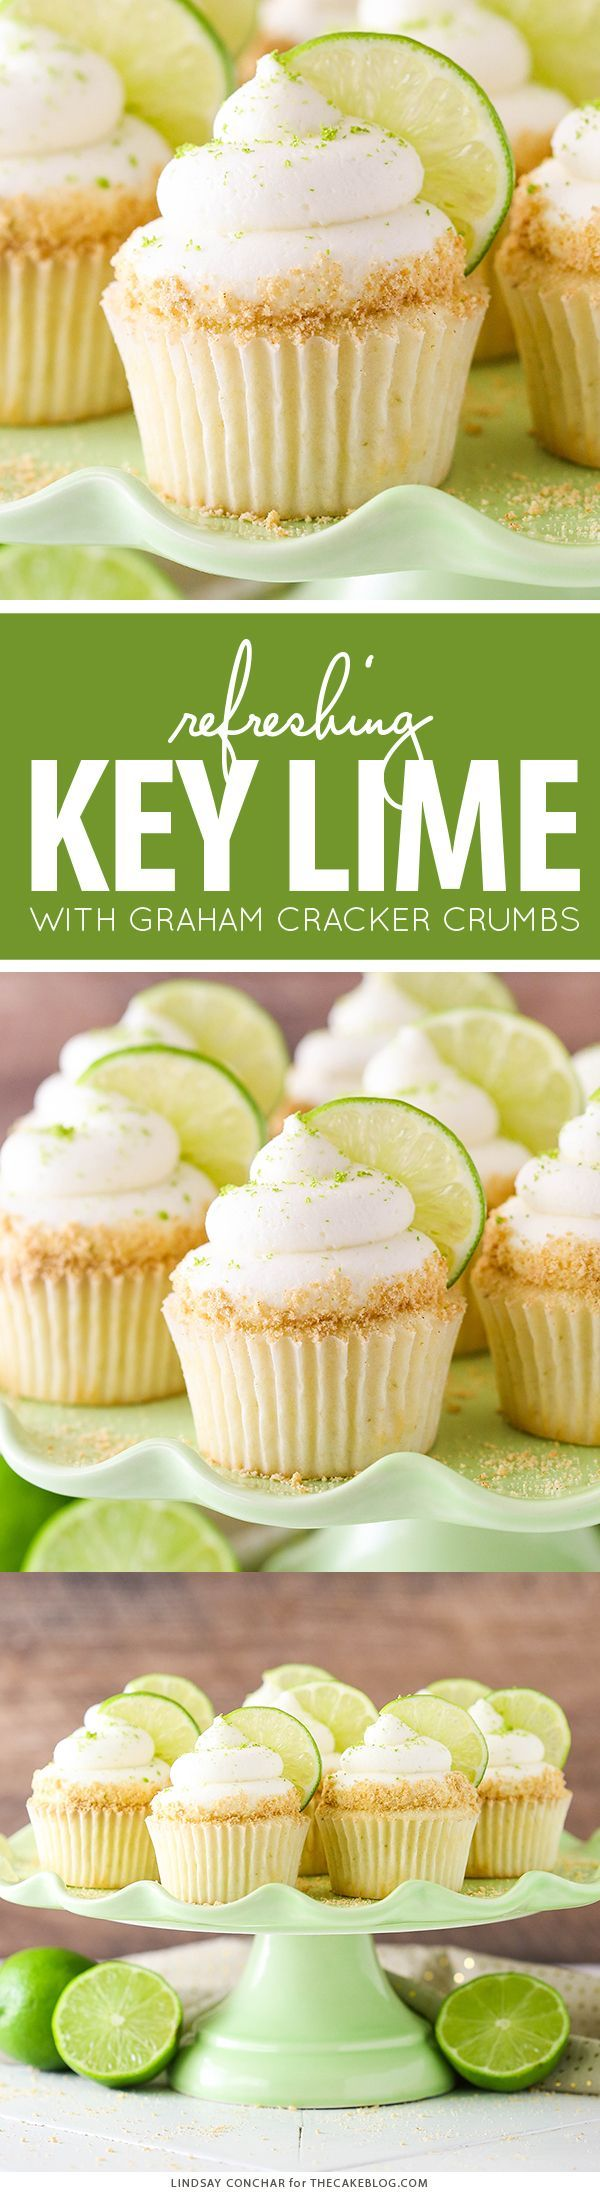 Key Lime Cupcakes - light, fluffy cupcakes full of key lime flavor! With lime juice and zest, topped with a tangy sweet lime frosting and graham cracker crumbs | by Lindsay Conchar for TheCakeBlog.com